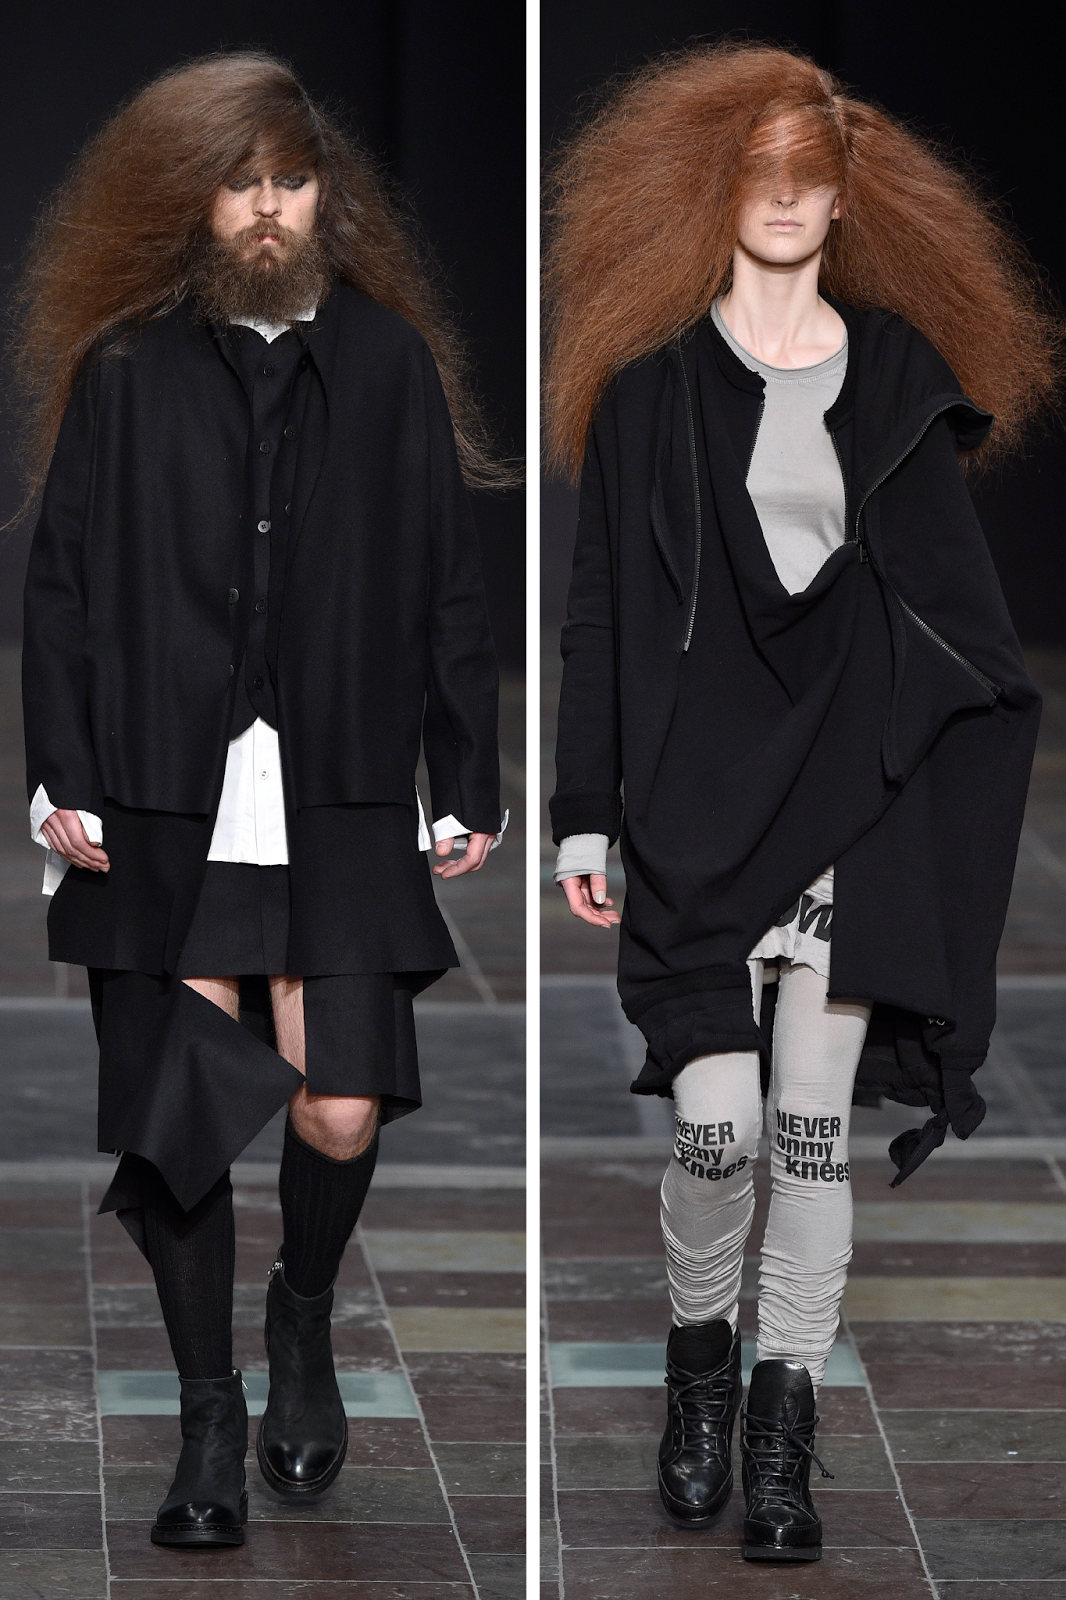 Copenhagen fashion week AW15